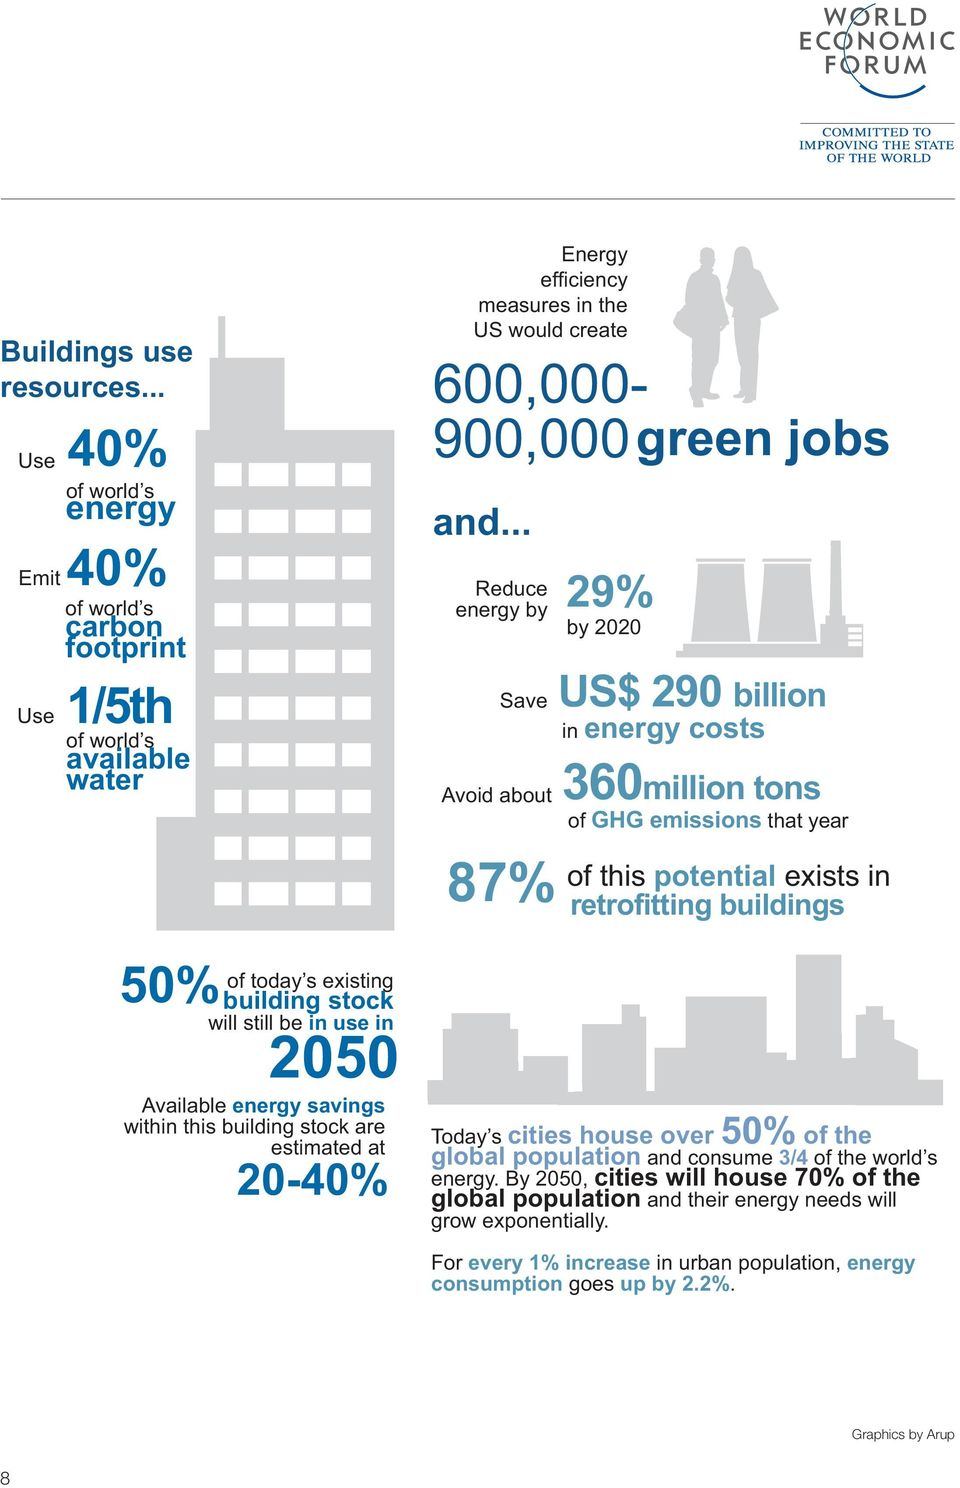 within this building stock are estimated at 20-40% Energy efficiency measures in the US would create 600,000-900,000 green jobs and.